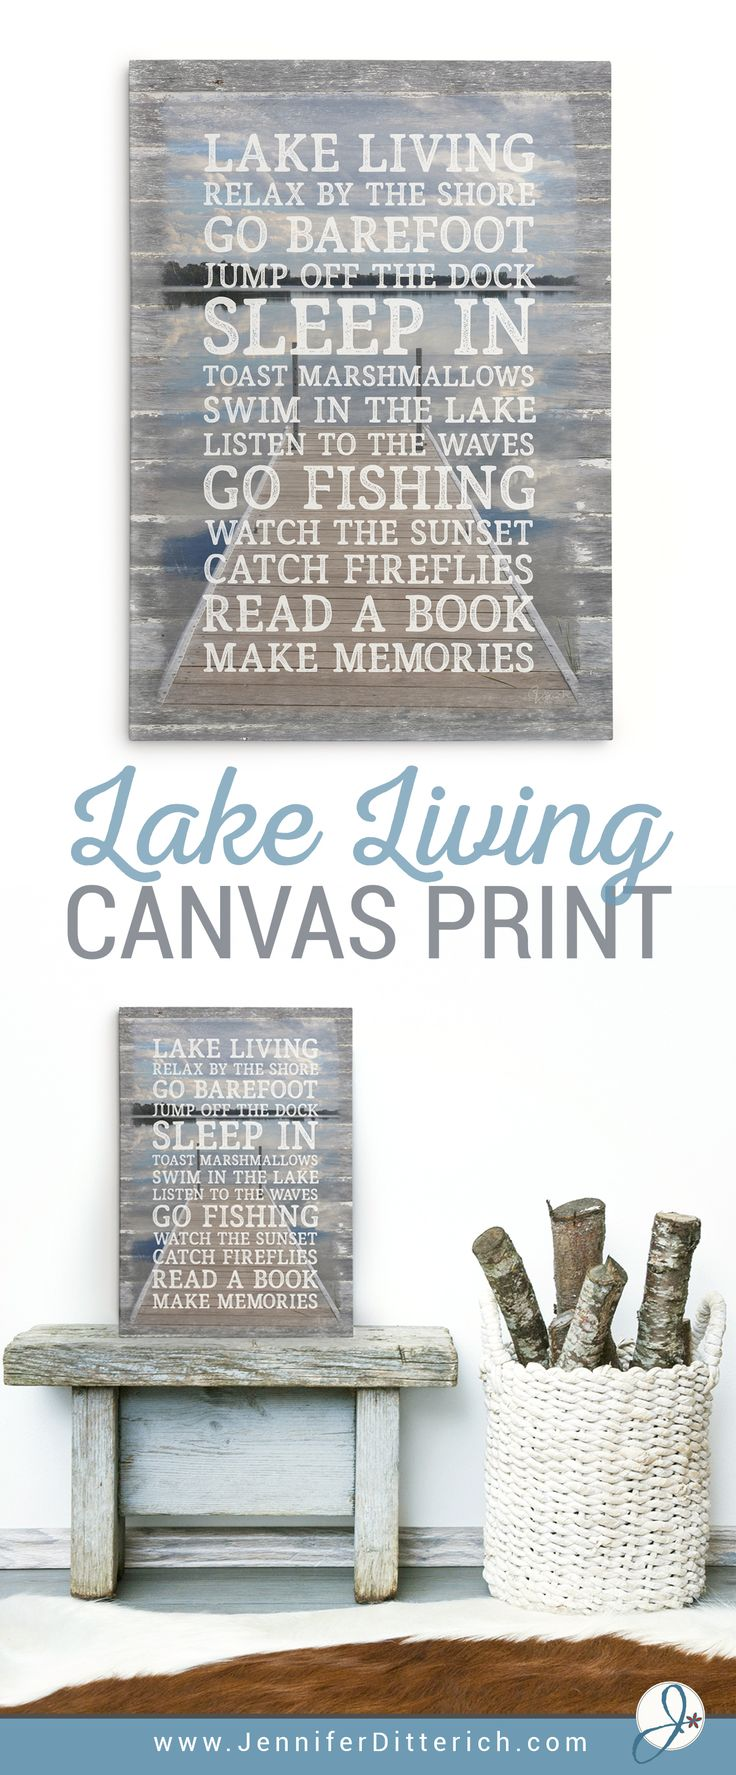 Lake Rules Sign on Canvas | Let everyone know that your rules for lake living are to relax and have fun | Can be customized with your own wording, too.